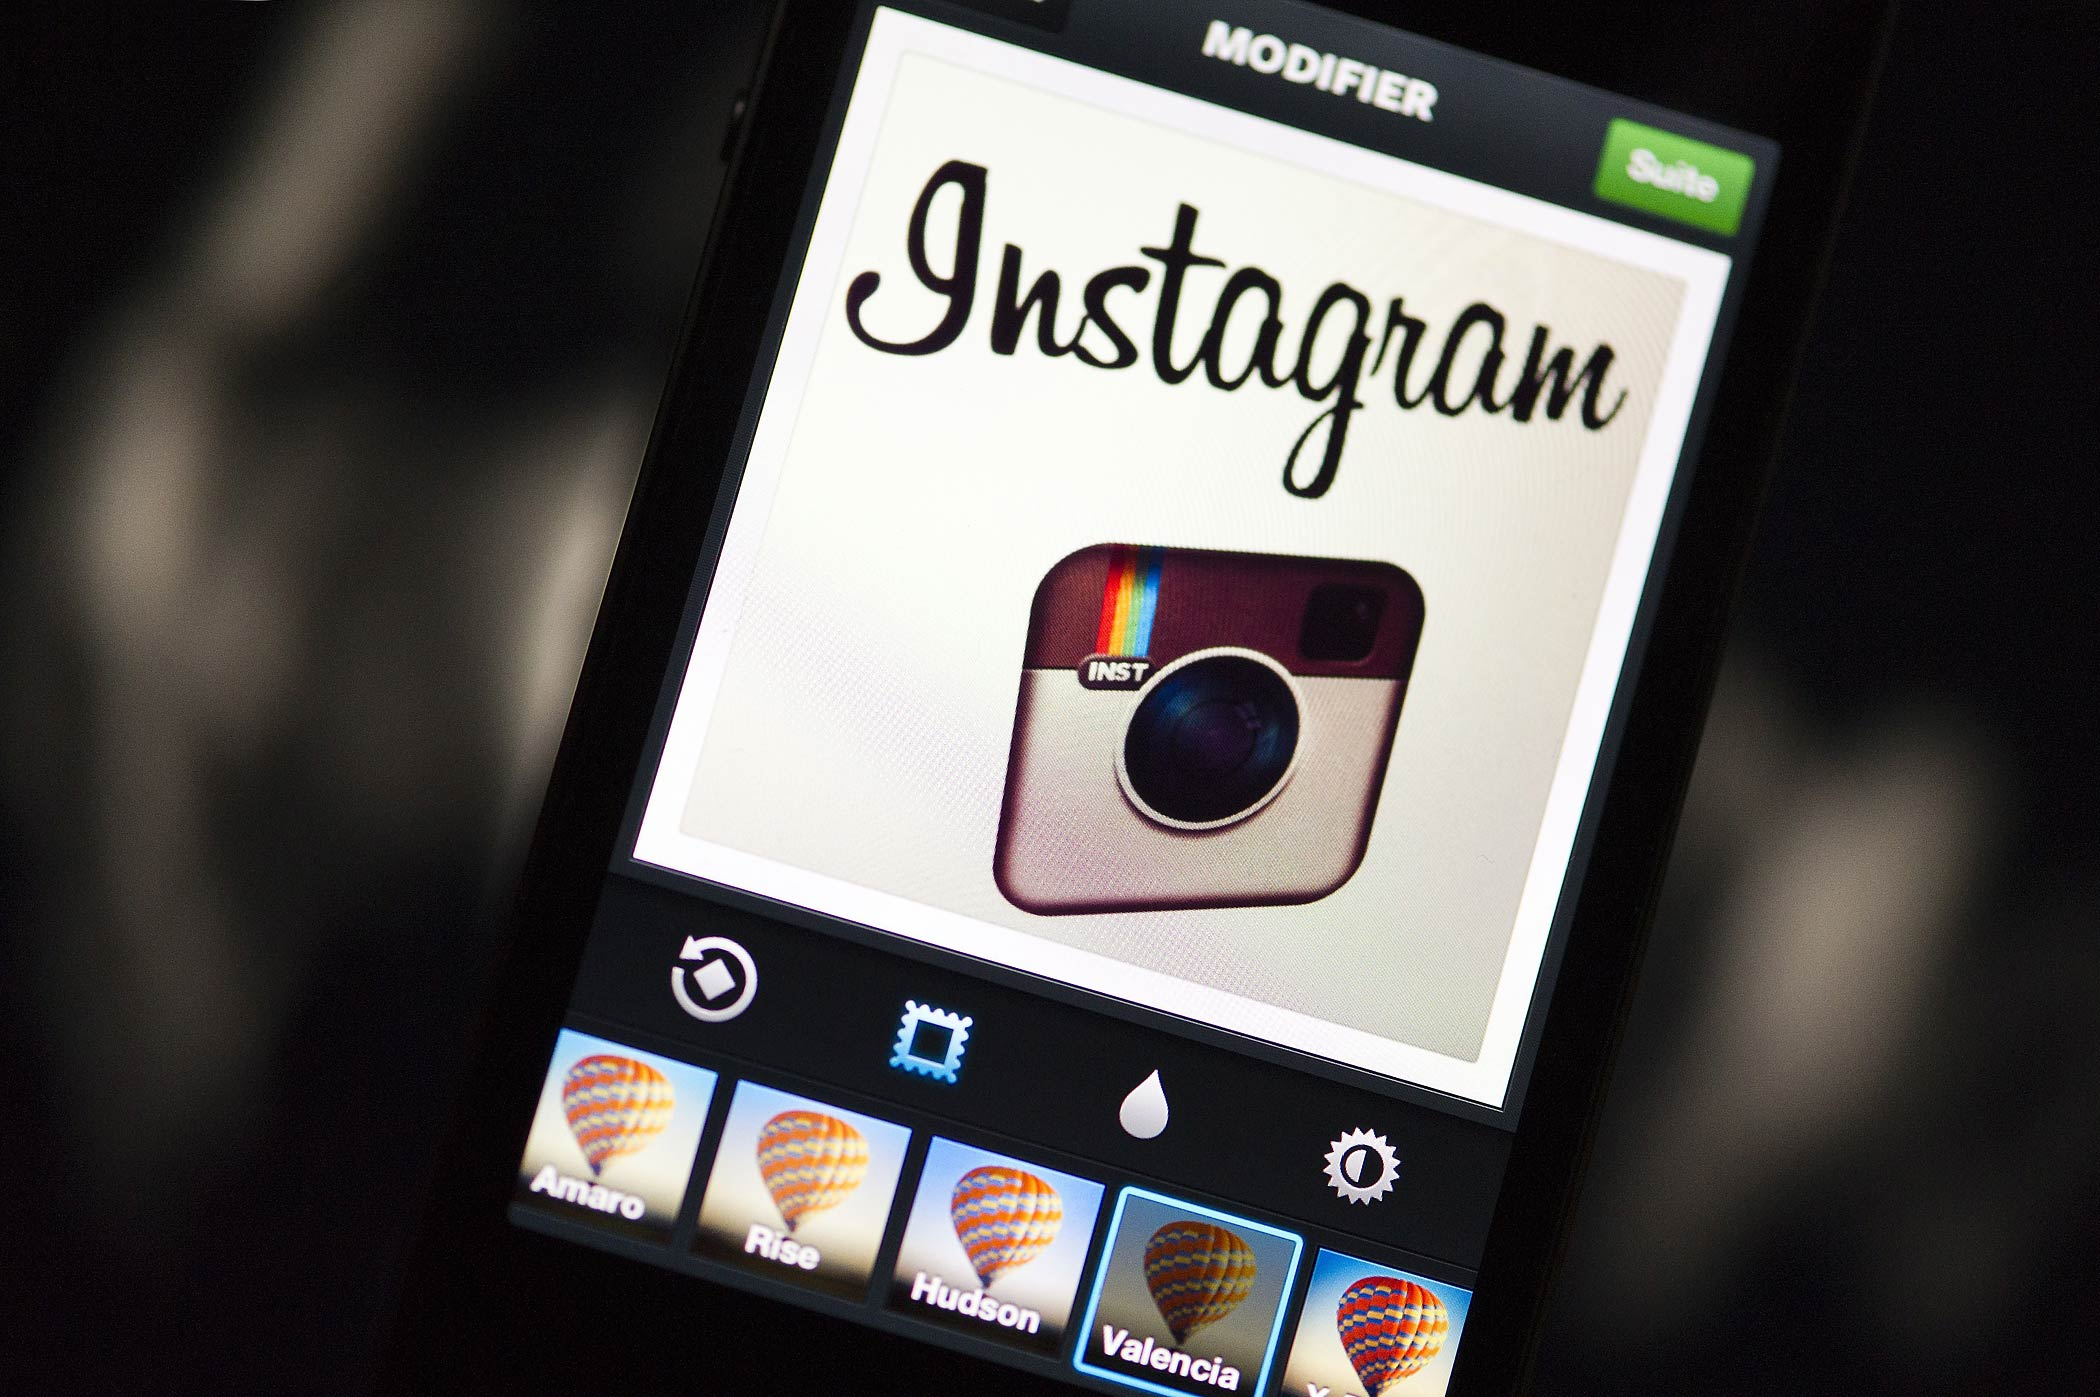 The Instagram logo is displayed on a smartphone on Dec. 20, 2012 in Paris, France.